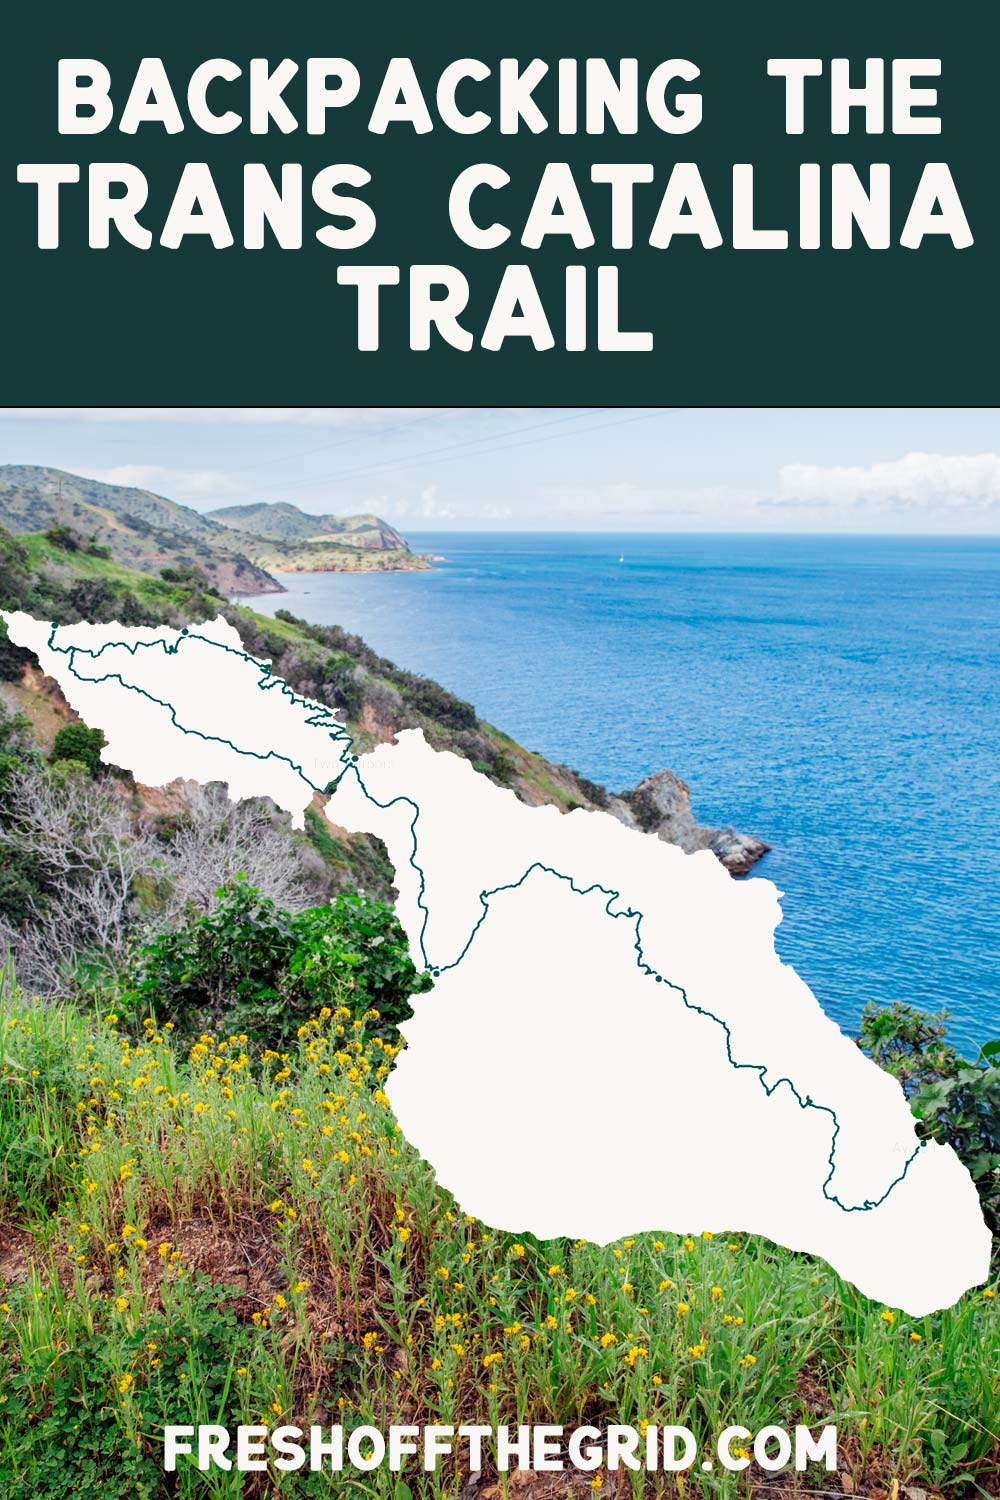 With mountainous terrain, stunning ocean vistas, and a captivating island mystique, the Trans Catalina Trail is a completely unique backpacking experience - unlike anything else in the United States. 